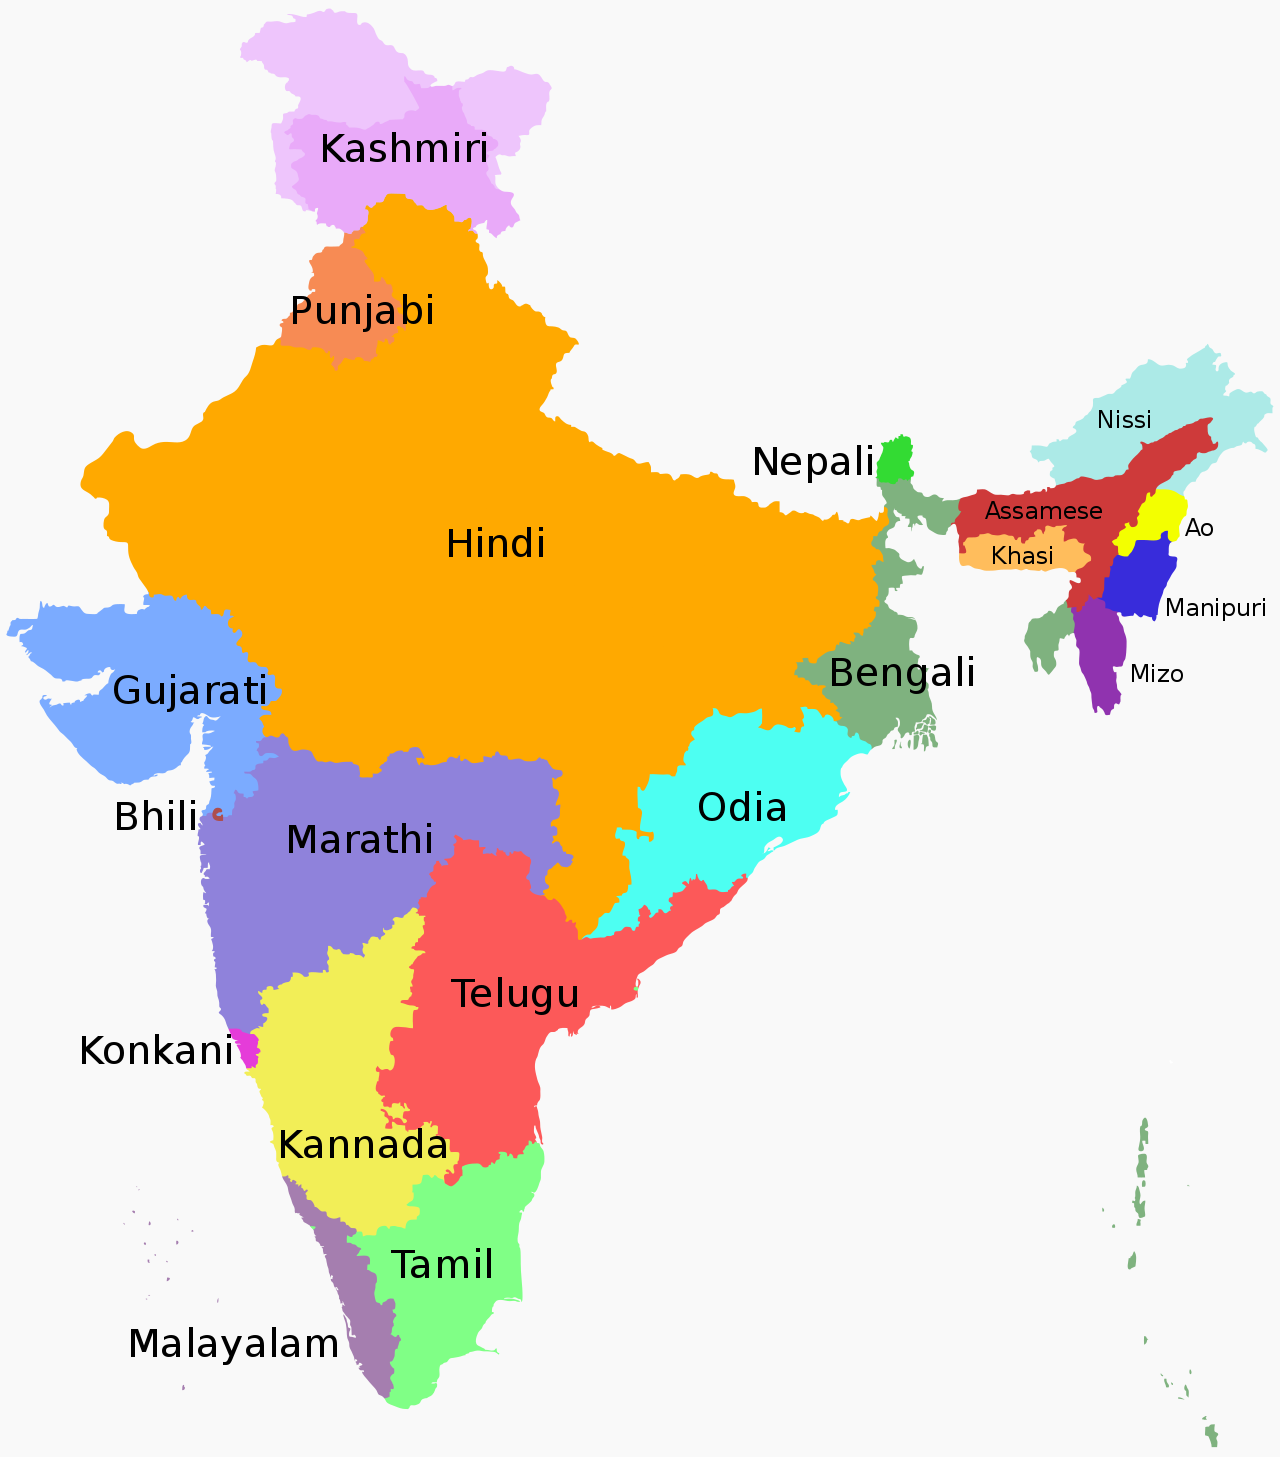 States And Union Territories Of India By The Most Commonly Spoken L1 First Language 1 A Language Map India Map Indian Constitution